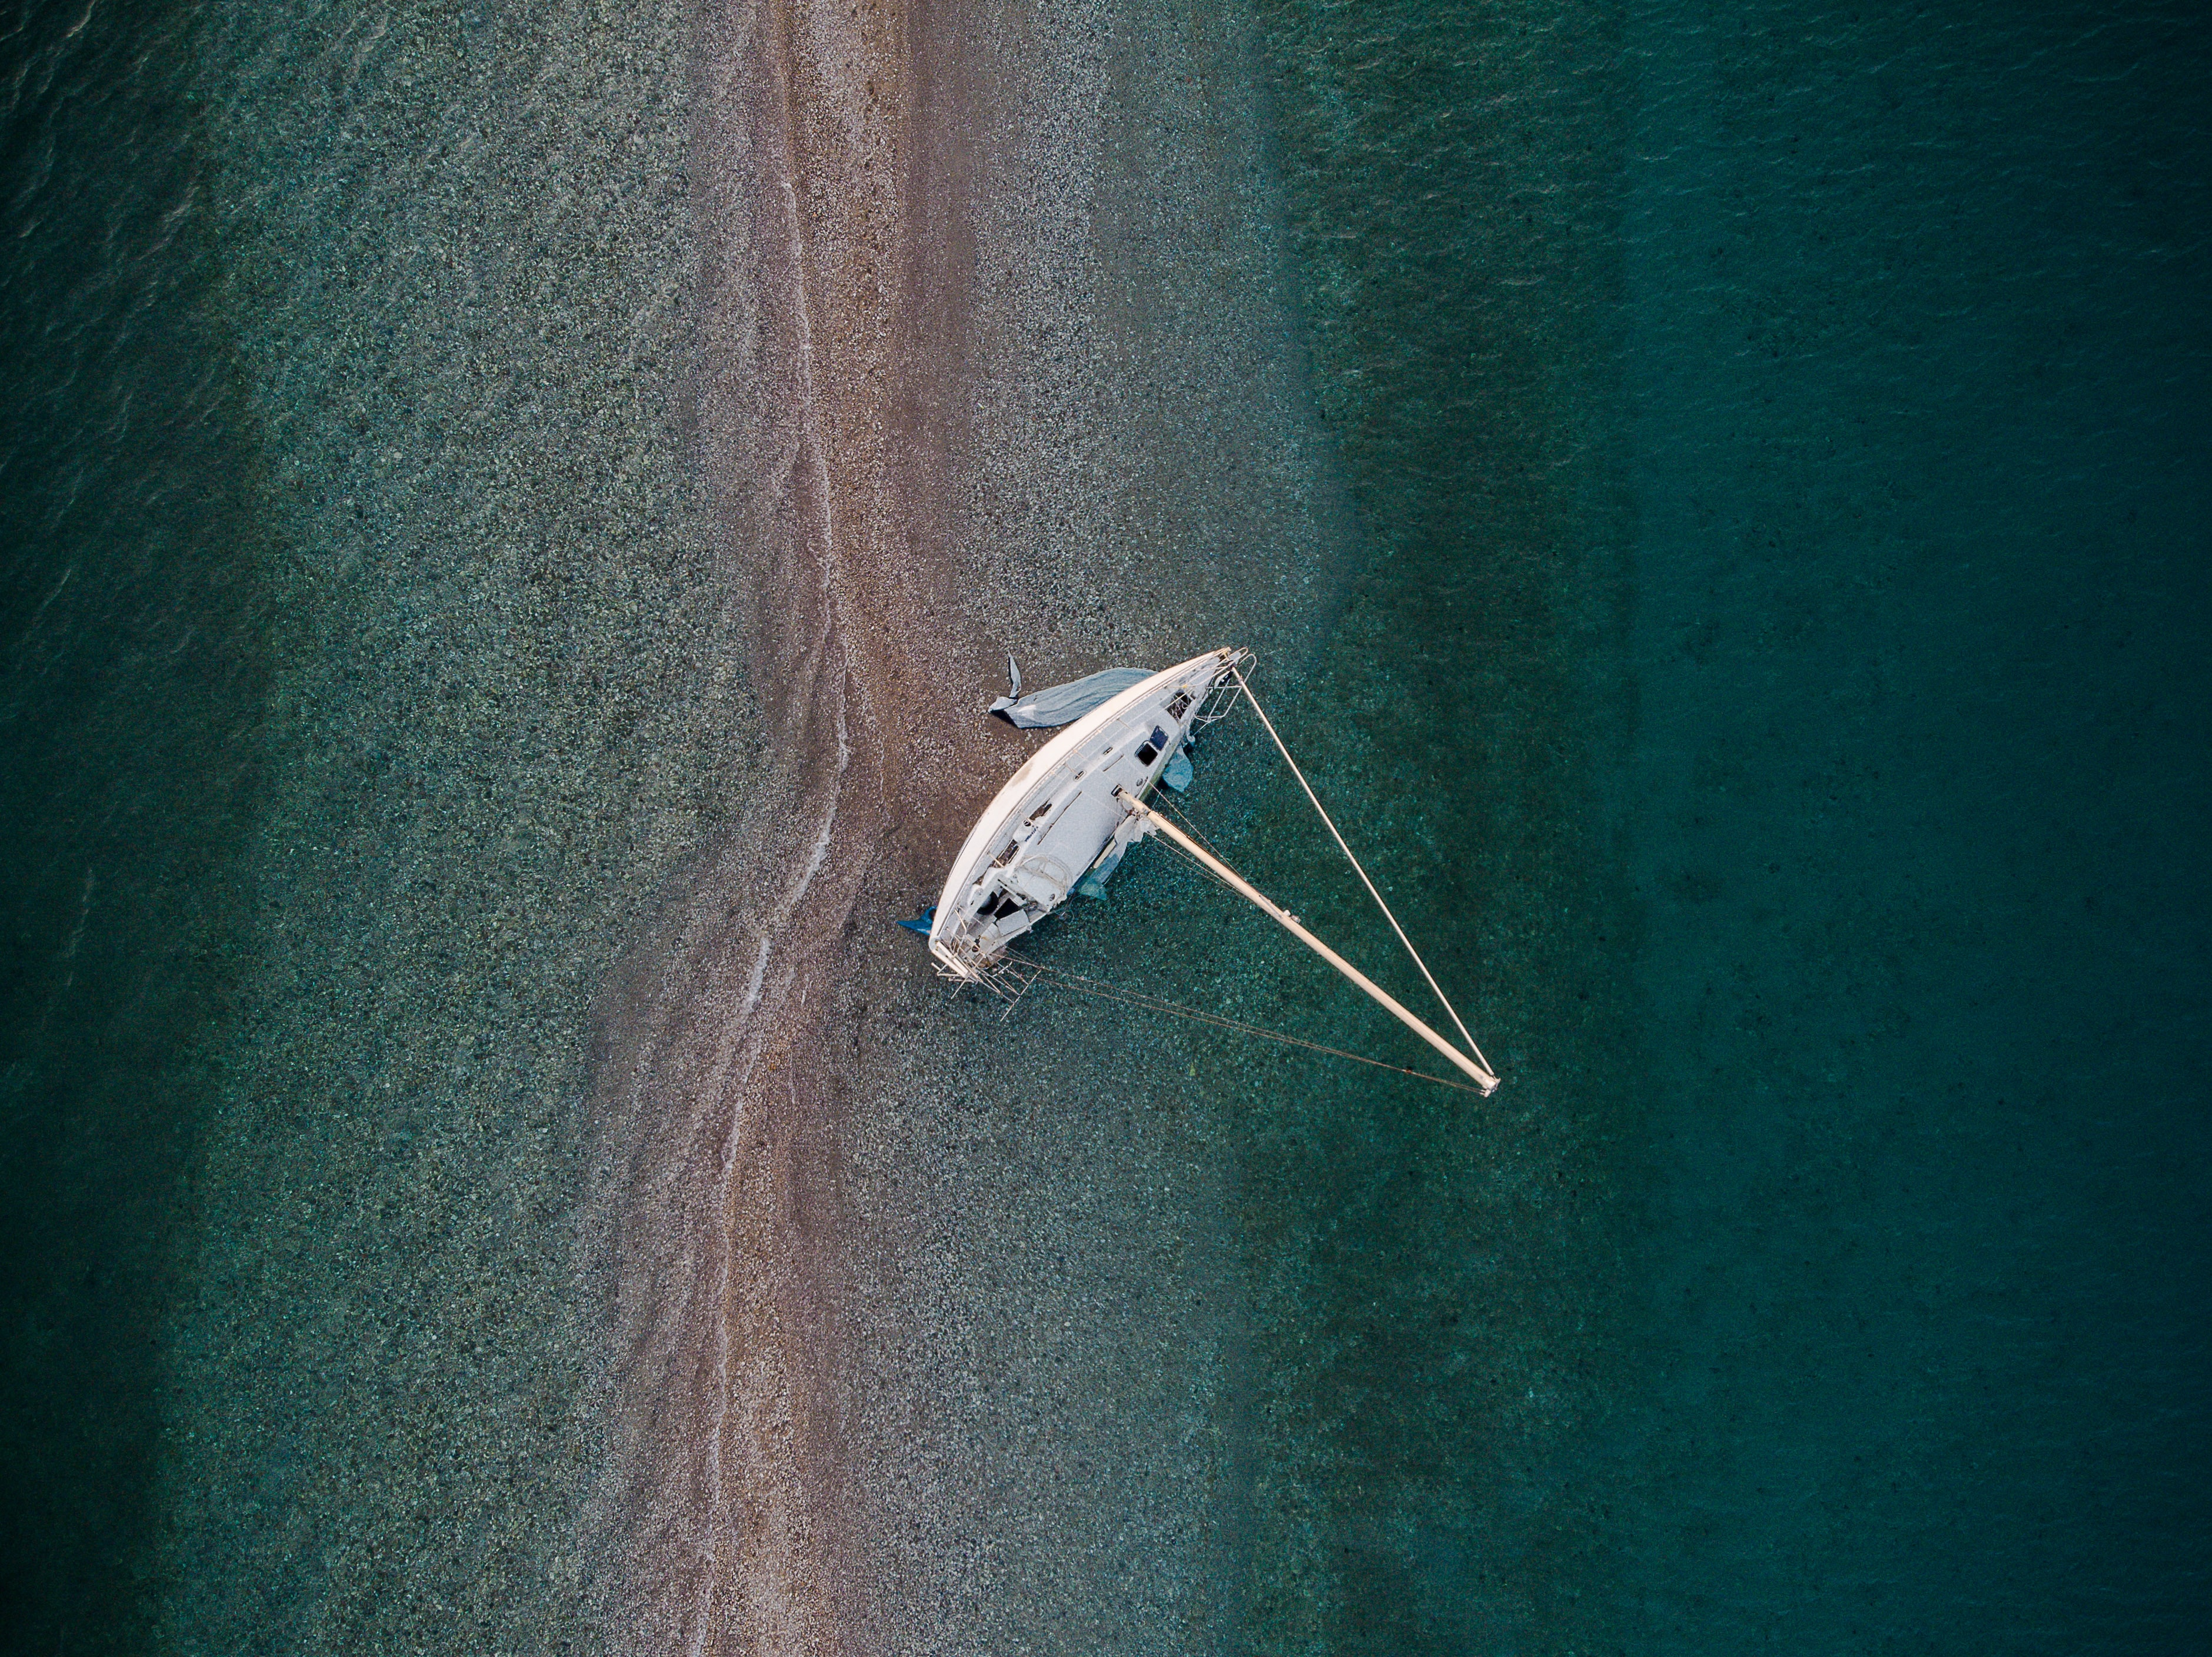 bird's-eye view photography of sail boat